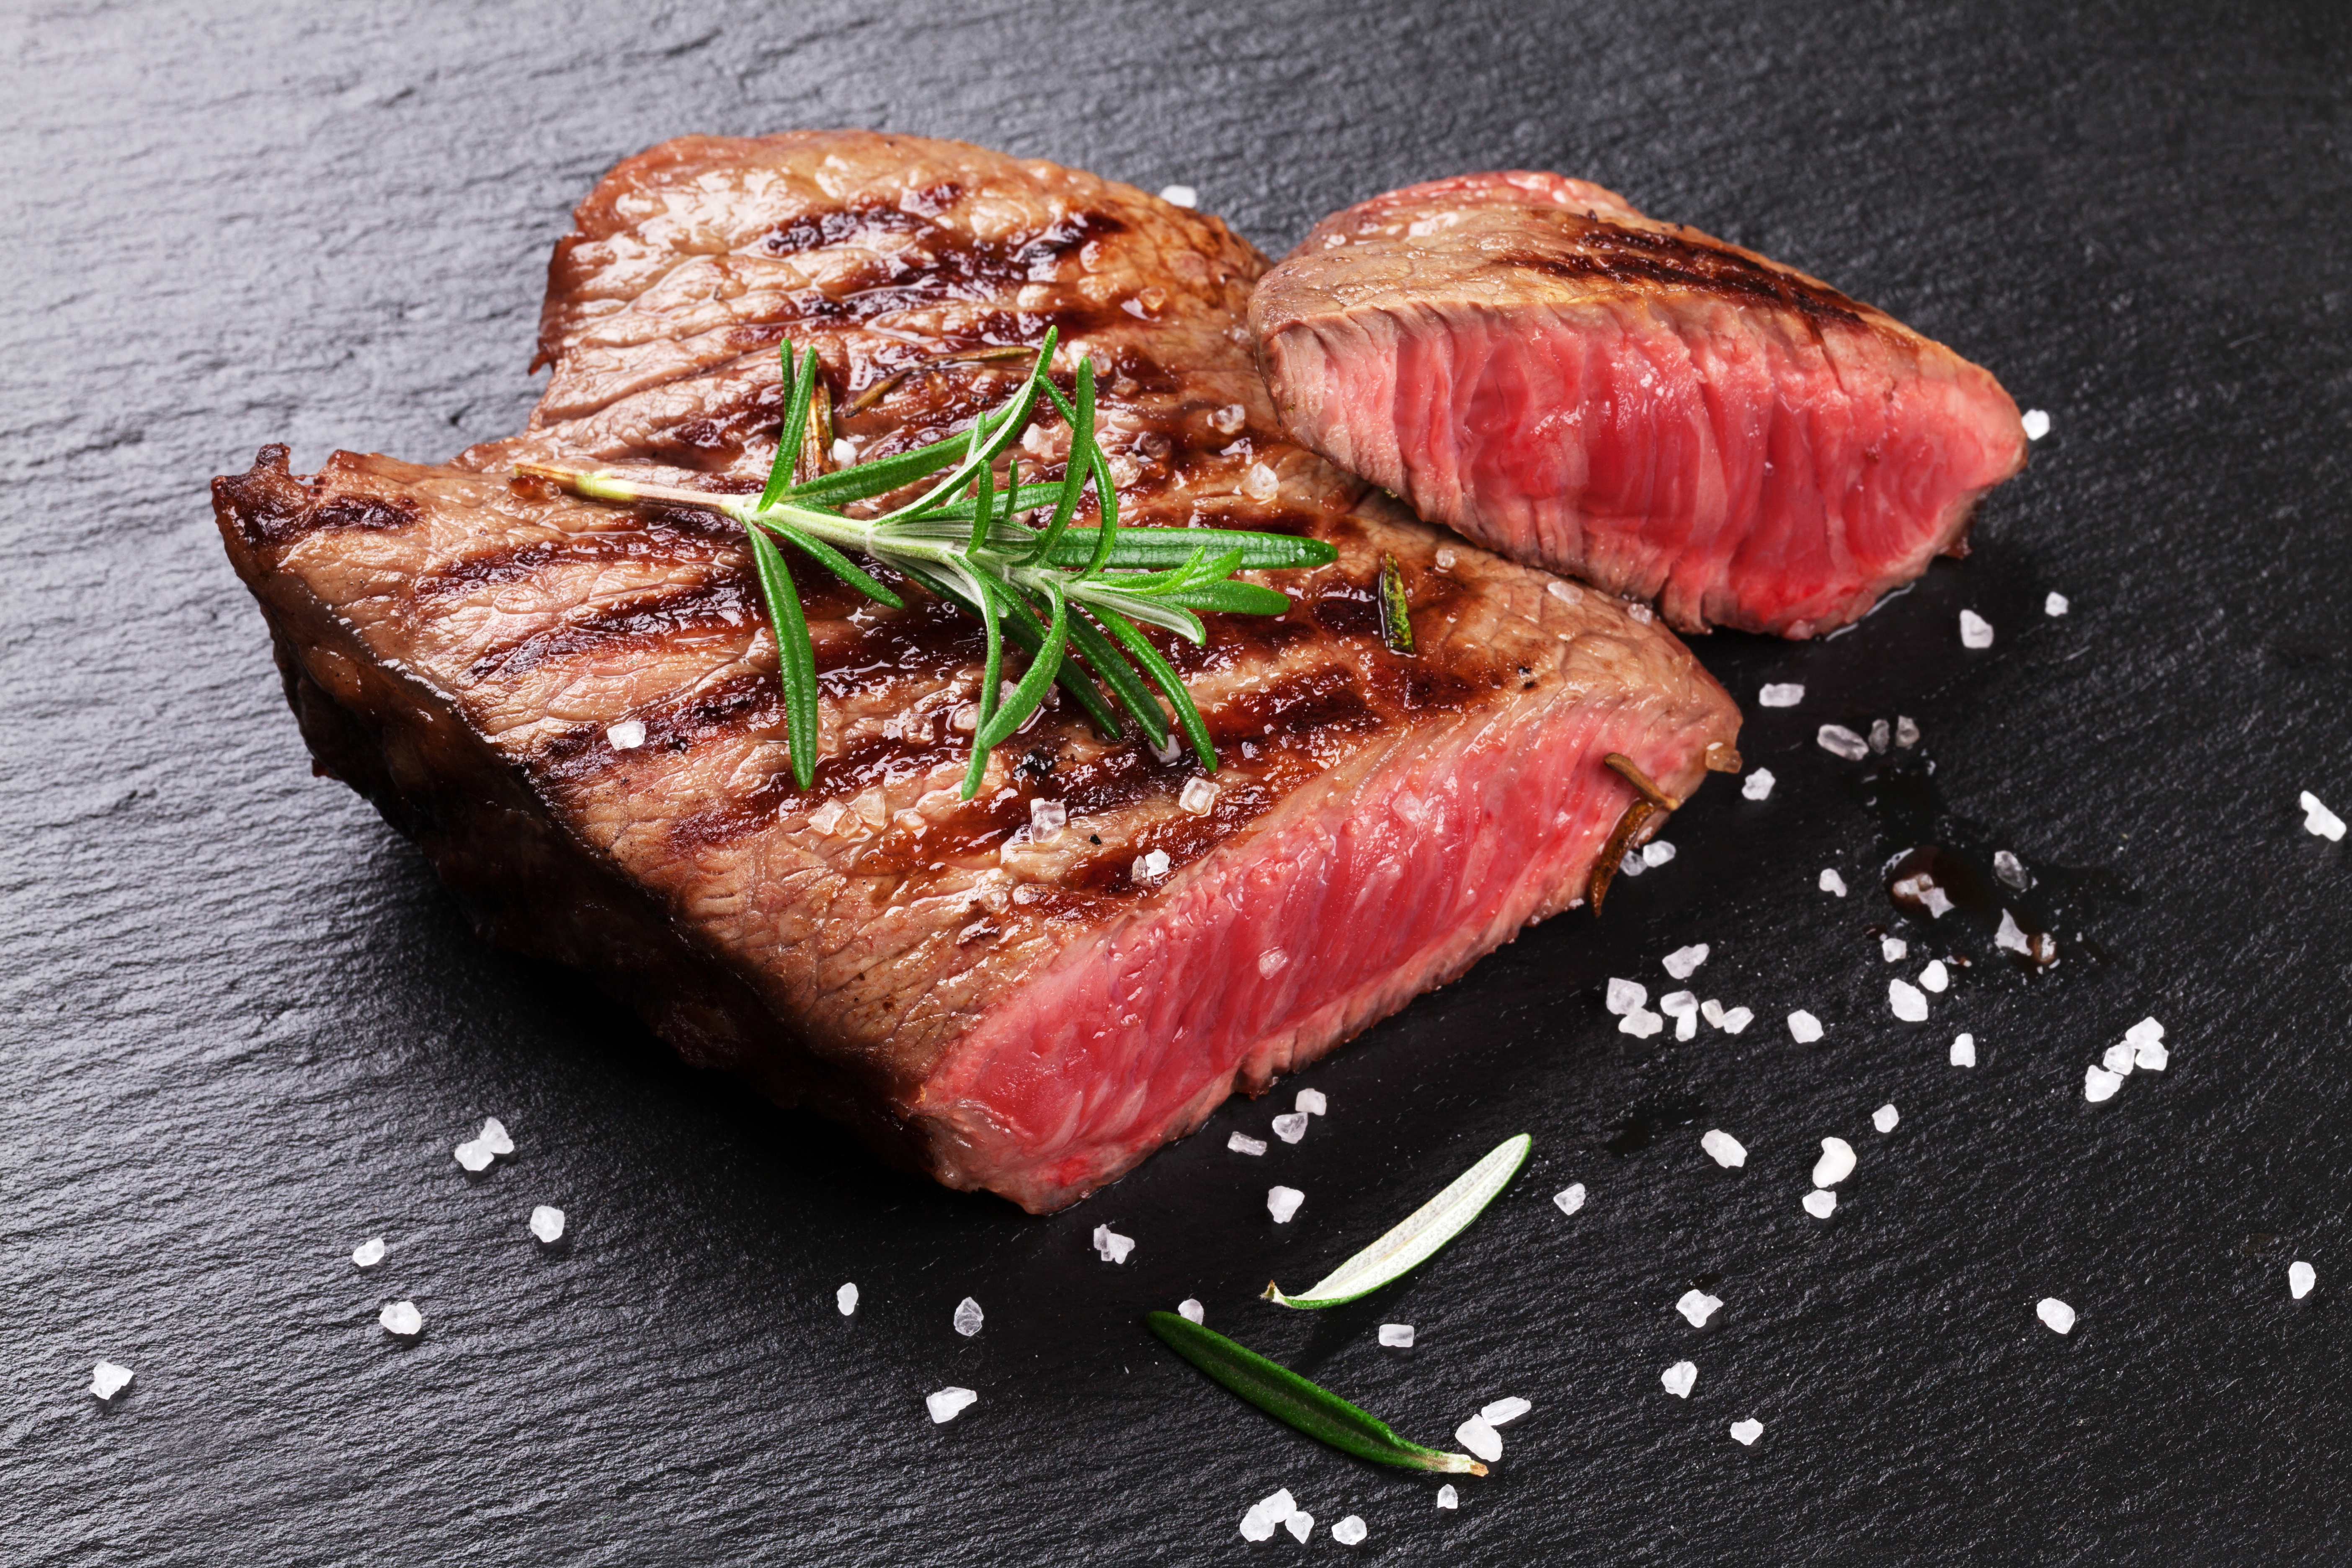 Quality of Beef Still Matters for Today's Consumer